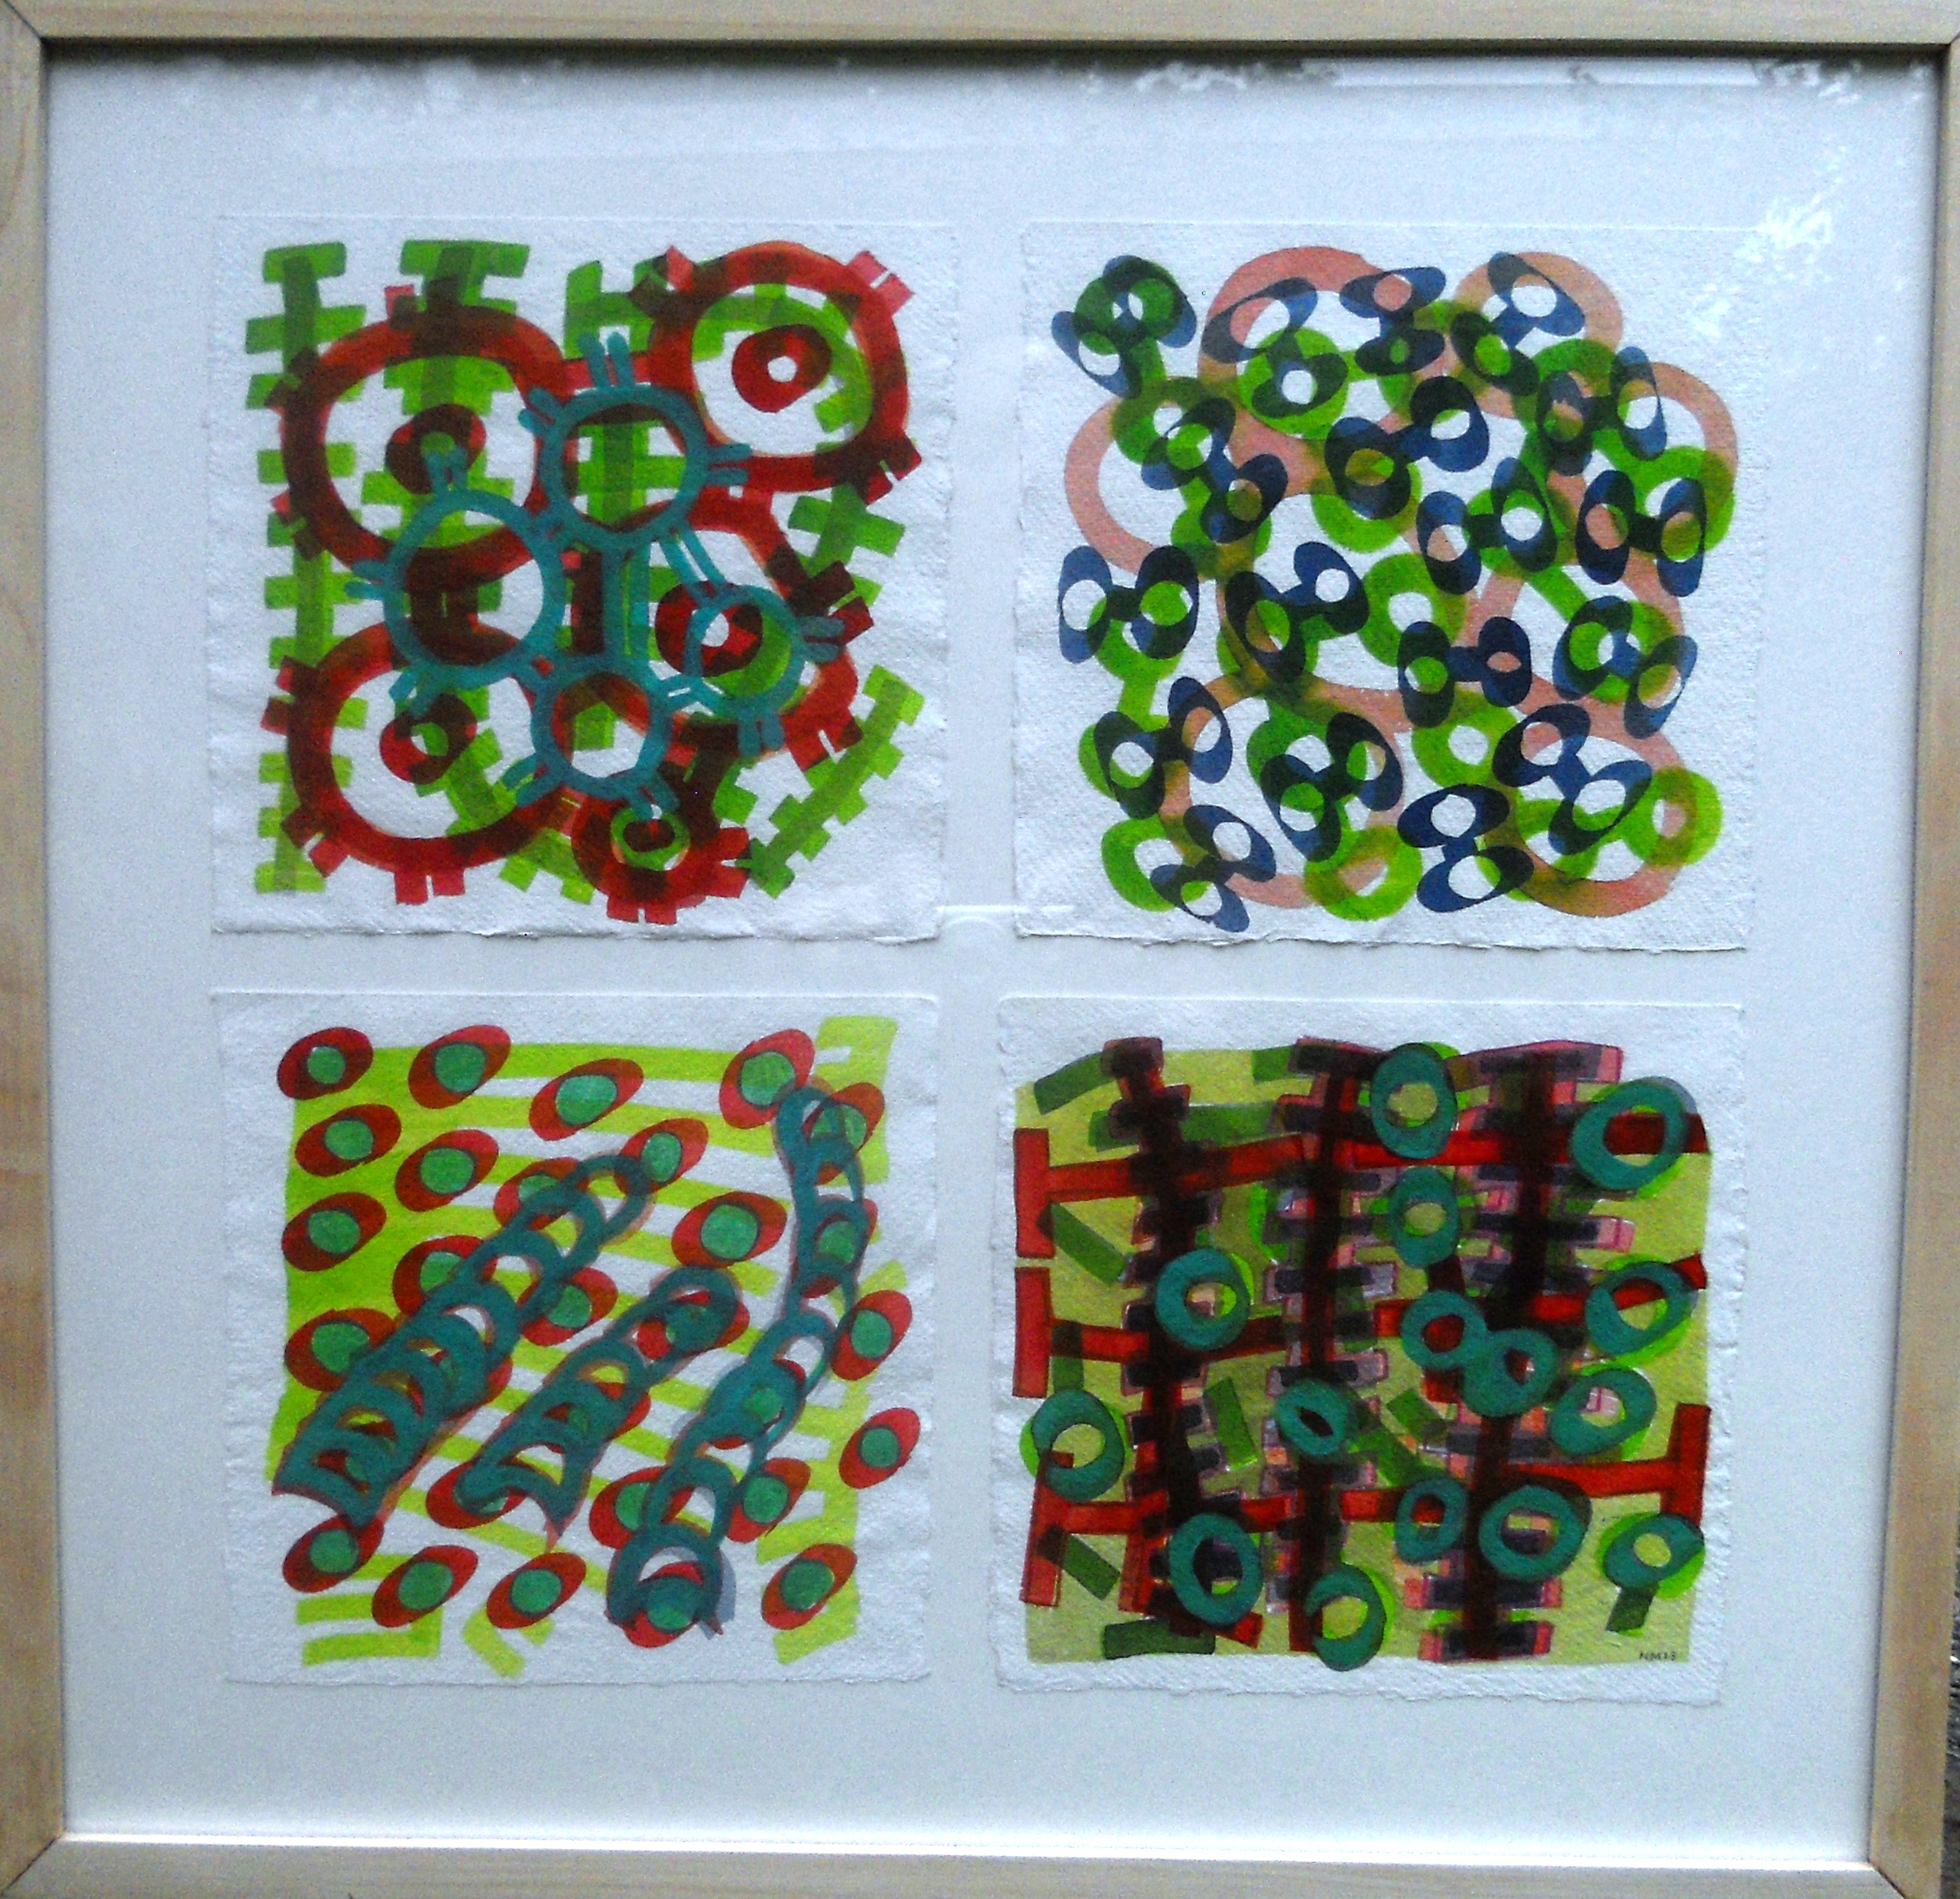 'Red green layers' 2013, Acrylic on paper, each piece  20cm x 20cm. Exhibited in Nairobi, 2013.JPG